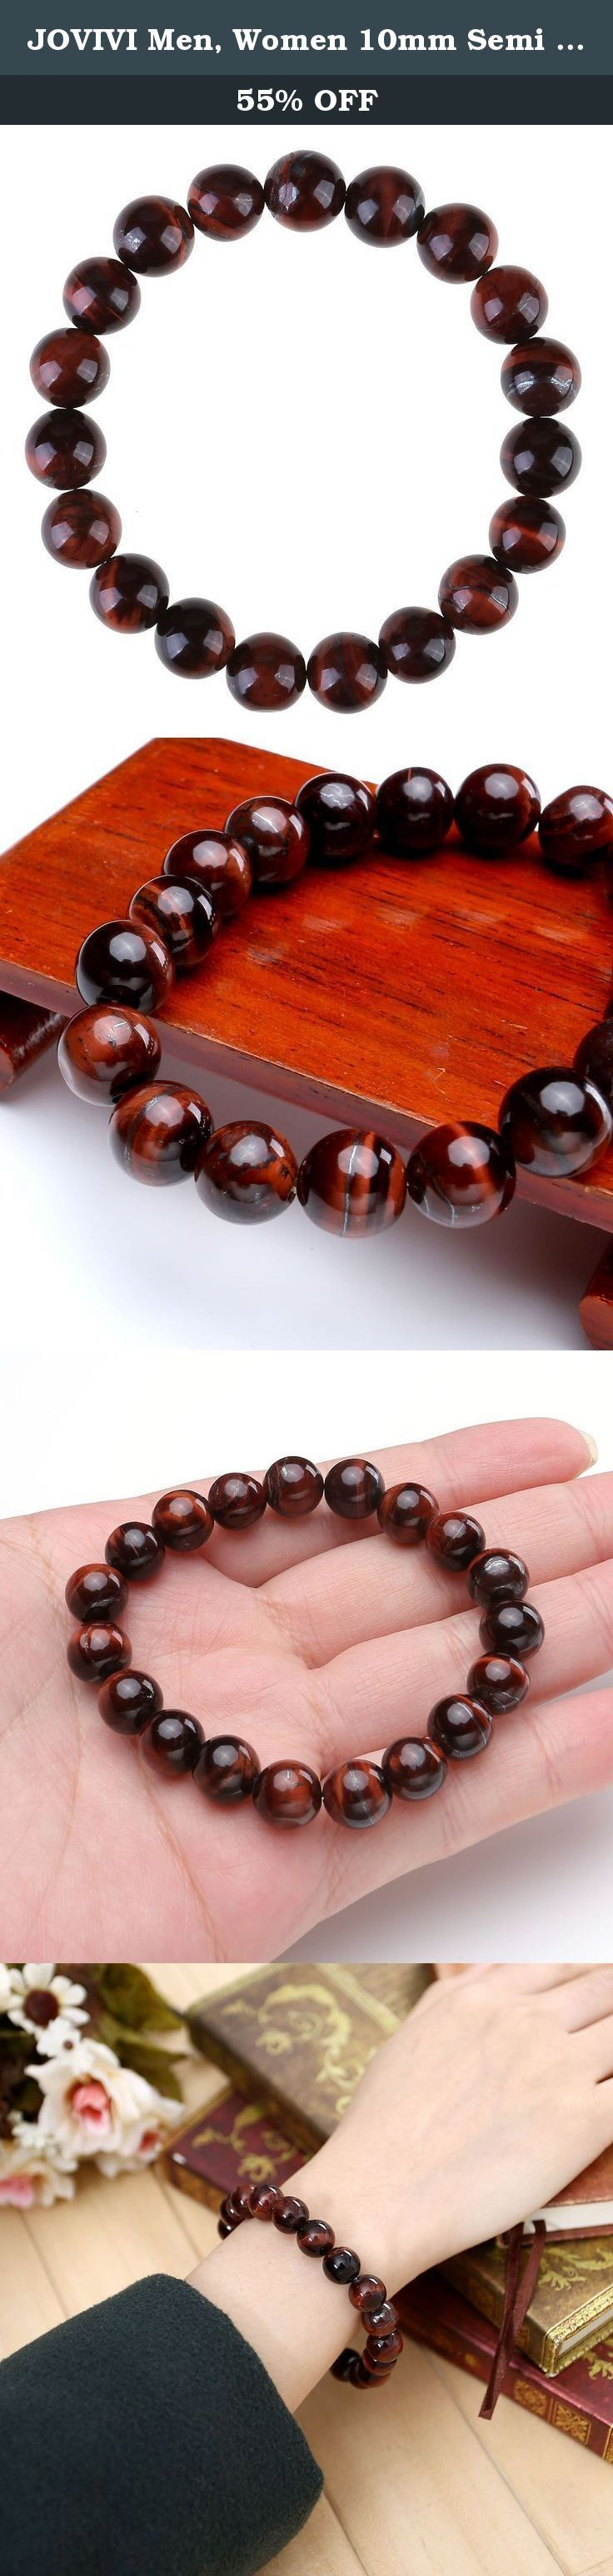 "JOVIVI Men, Women 10mm Semi Precious Gemstone 8mm Round Beads Stretch Bracelet 7""L. *Thank you for visiting JOVIVI Store. We are specializing in jewelry making beads and findings. *If you like this product, we advise you add it to wish list now, so that we will inform you immediately once it has a discount. *And you can click our brand name which on the top of the title; you can find more jewelry making beads with high quality and reasonable price. *If you have any question or advice…"